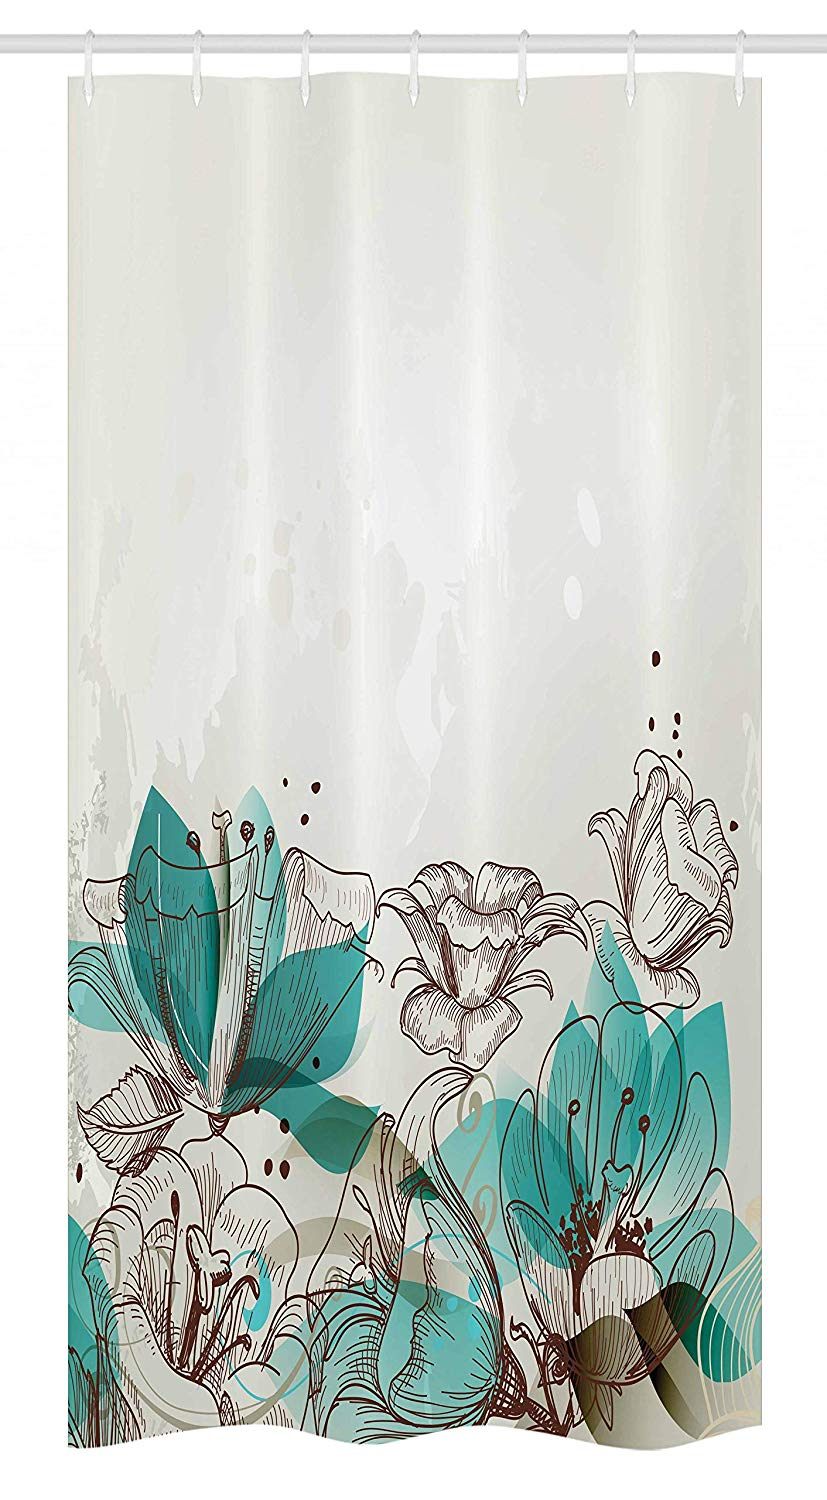 Ambesonne Turquoise Stall Shower Curtain, Retro Floral Background with Hibiscus Silhouettes Dramatic Romantic Nature Art, Fabric Bathroom Decor Set with Hooks, 36